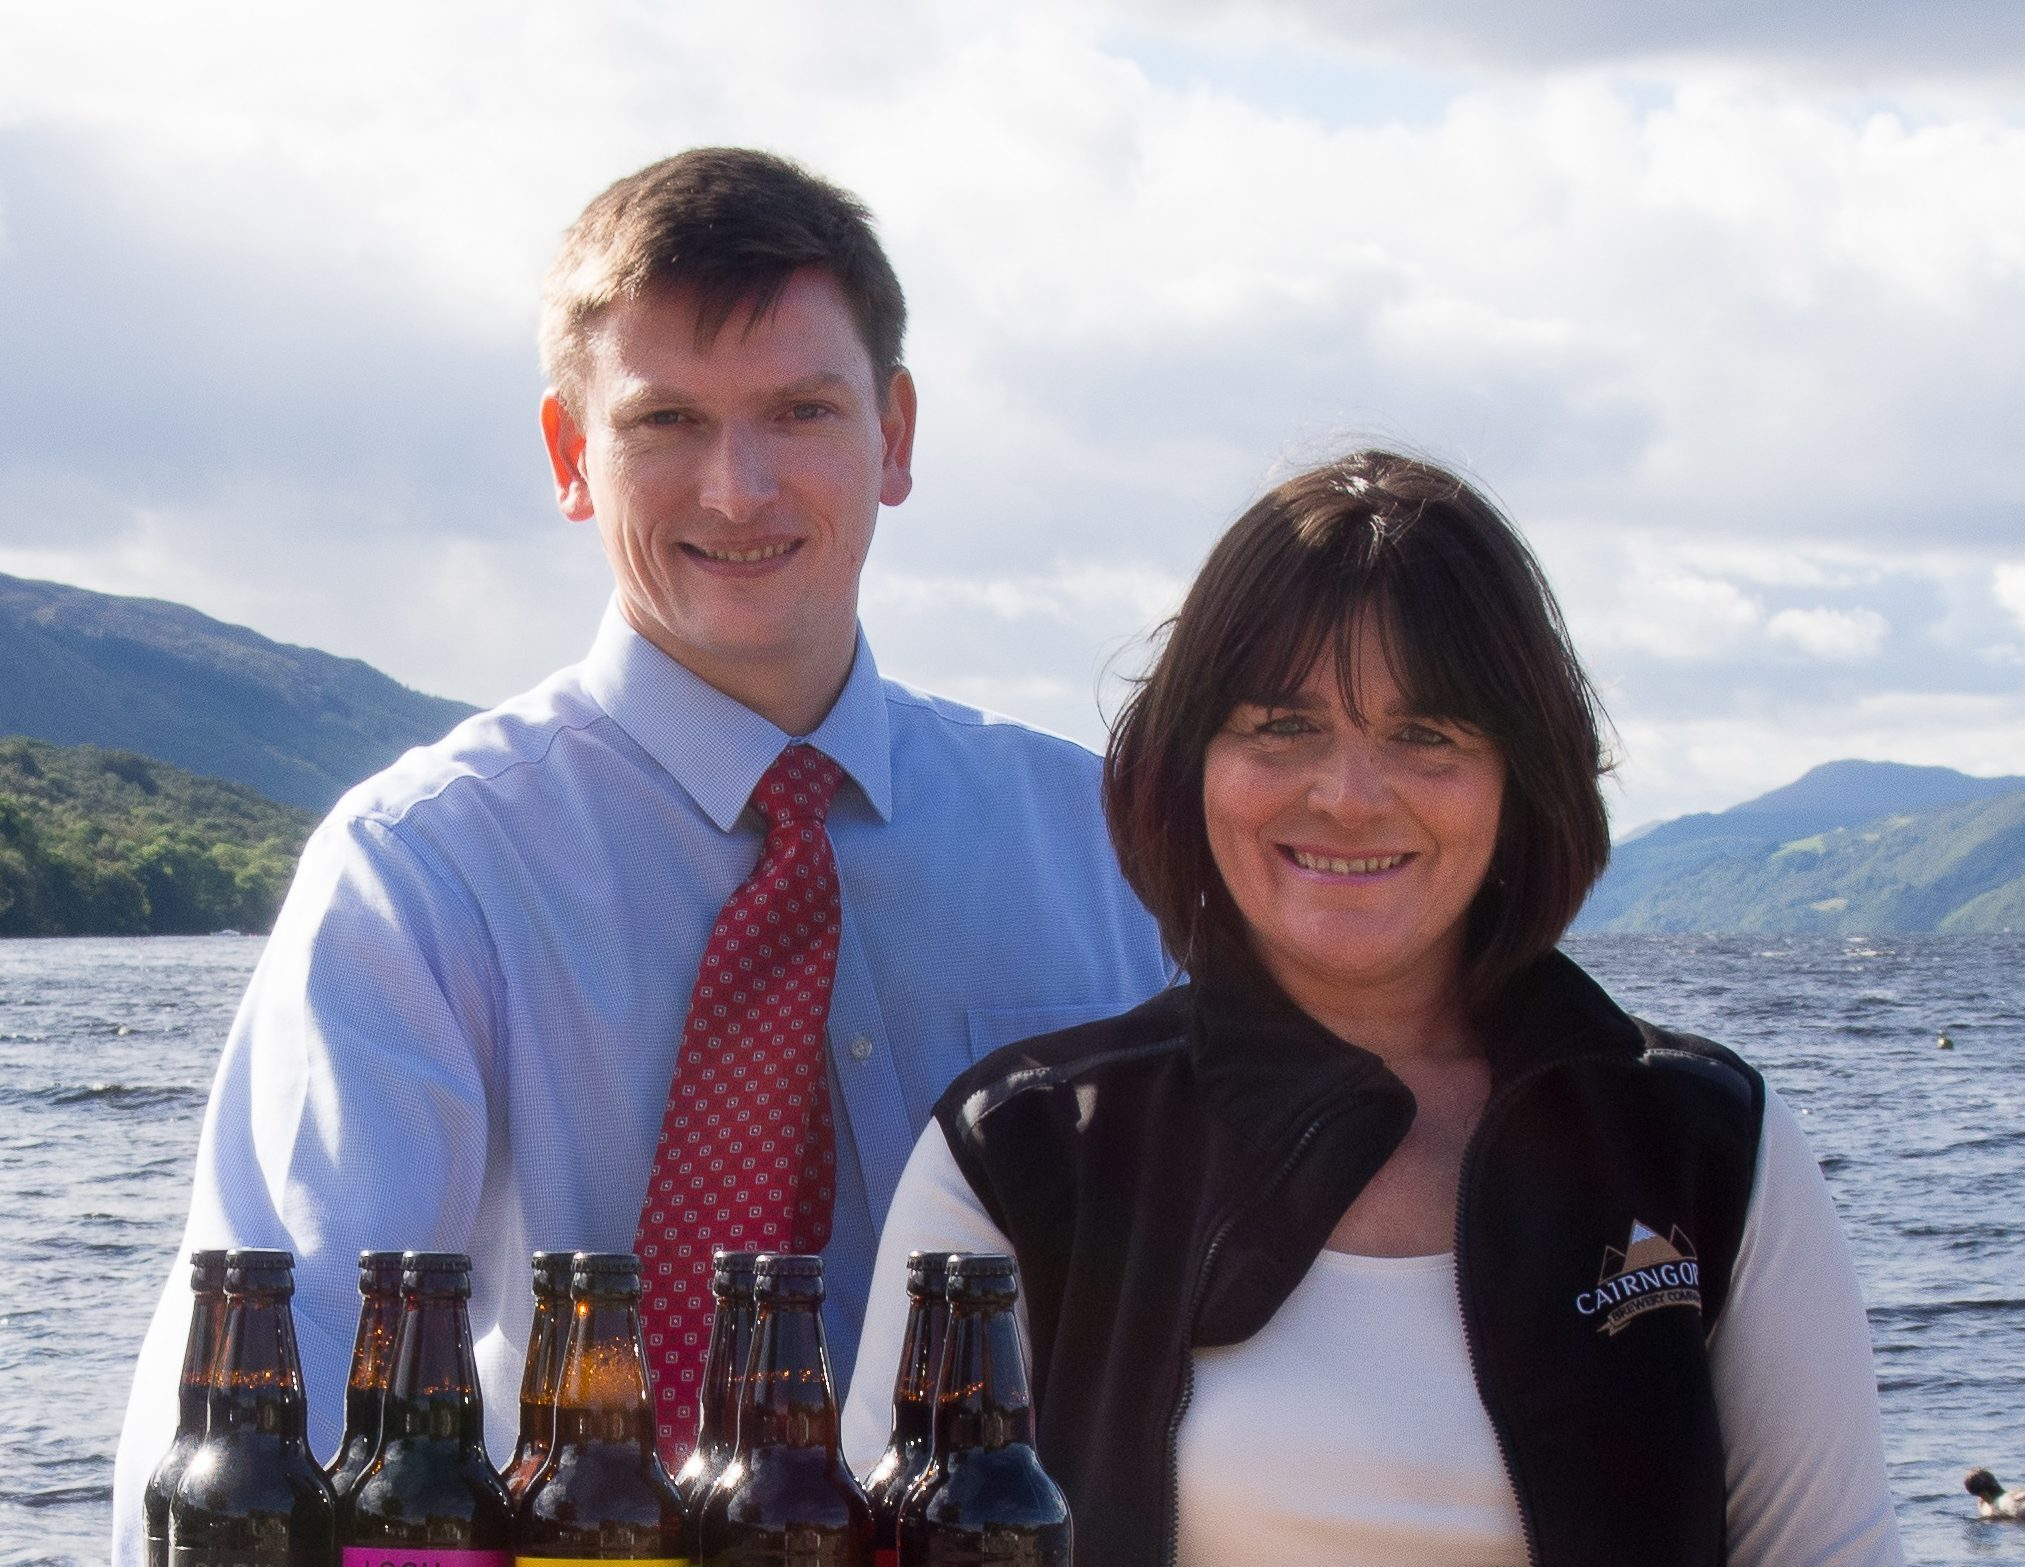 Rory Cameron, left, of Cobbs, with Sam Faircliff, of Cairngorm Brewery, at Loch Ness.